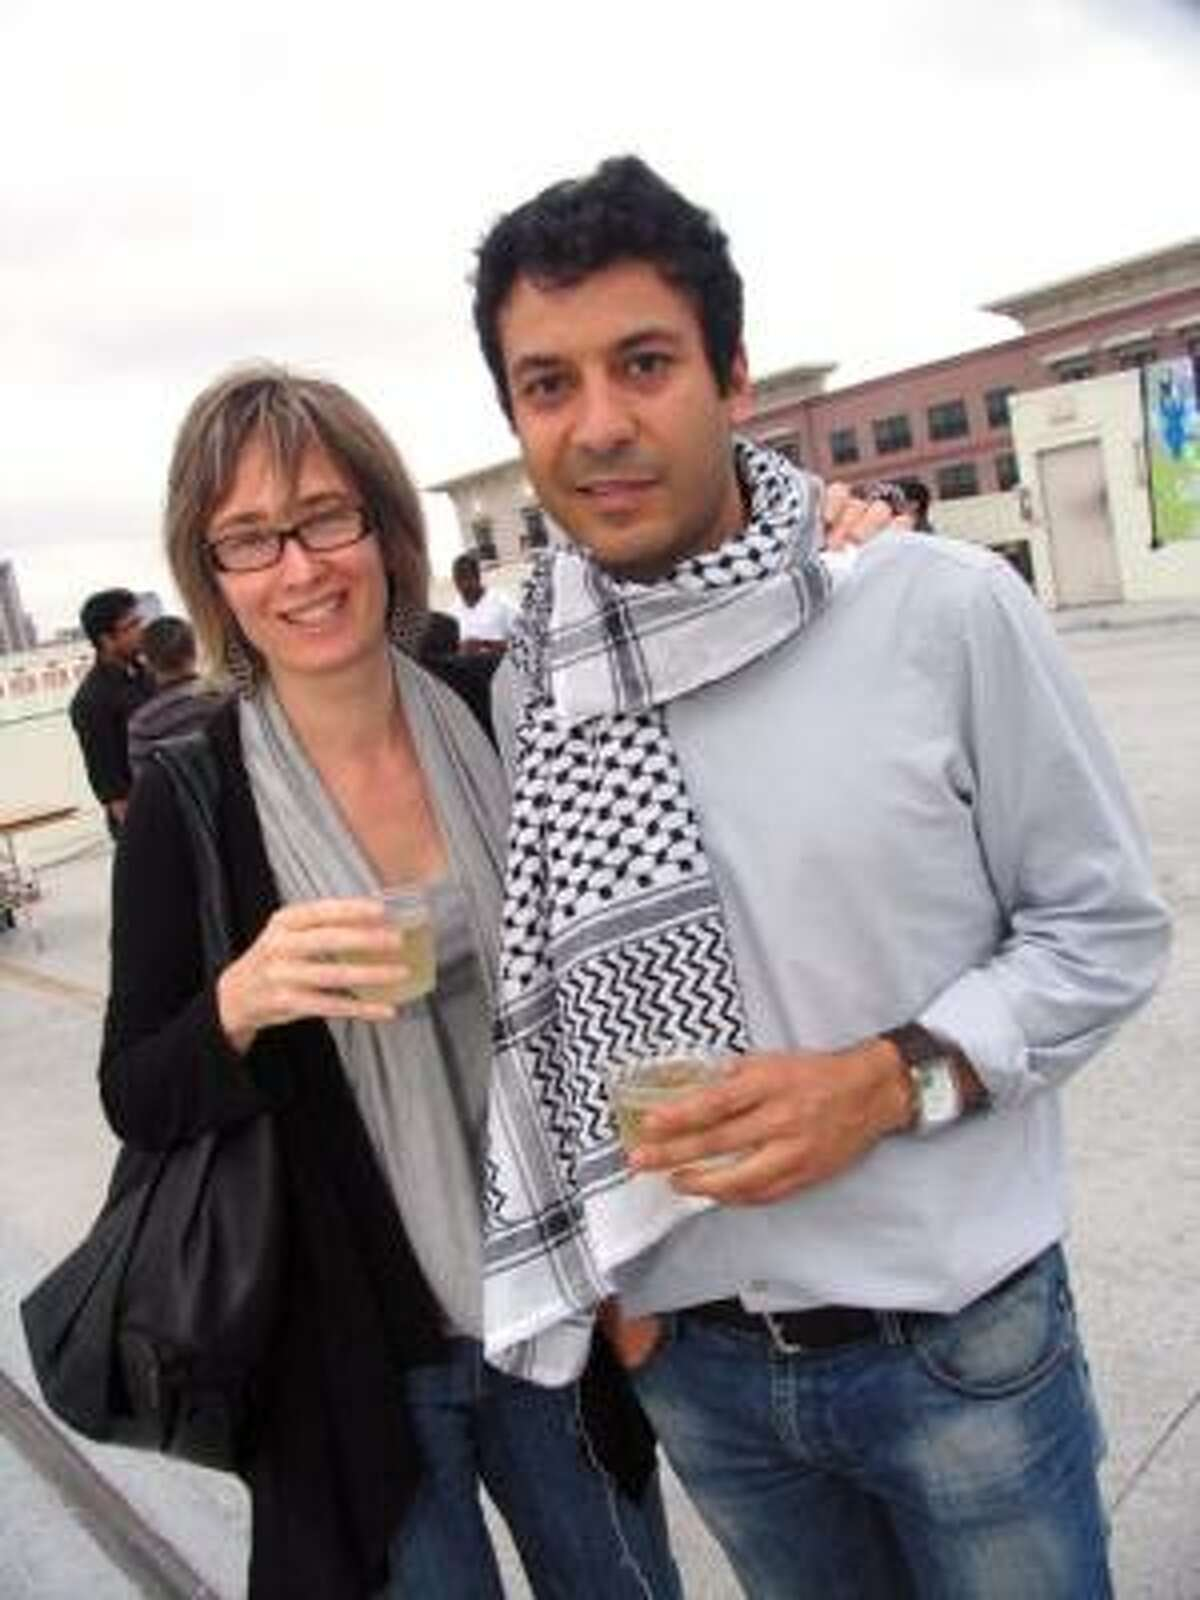 Suzanne Robertson, left, and Assaad Abbond